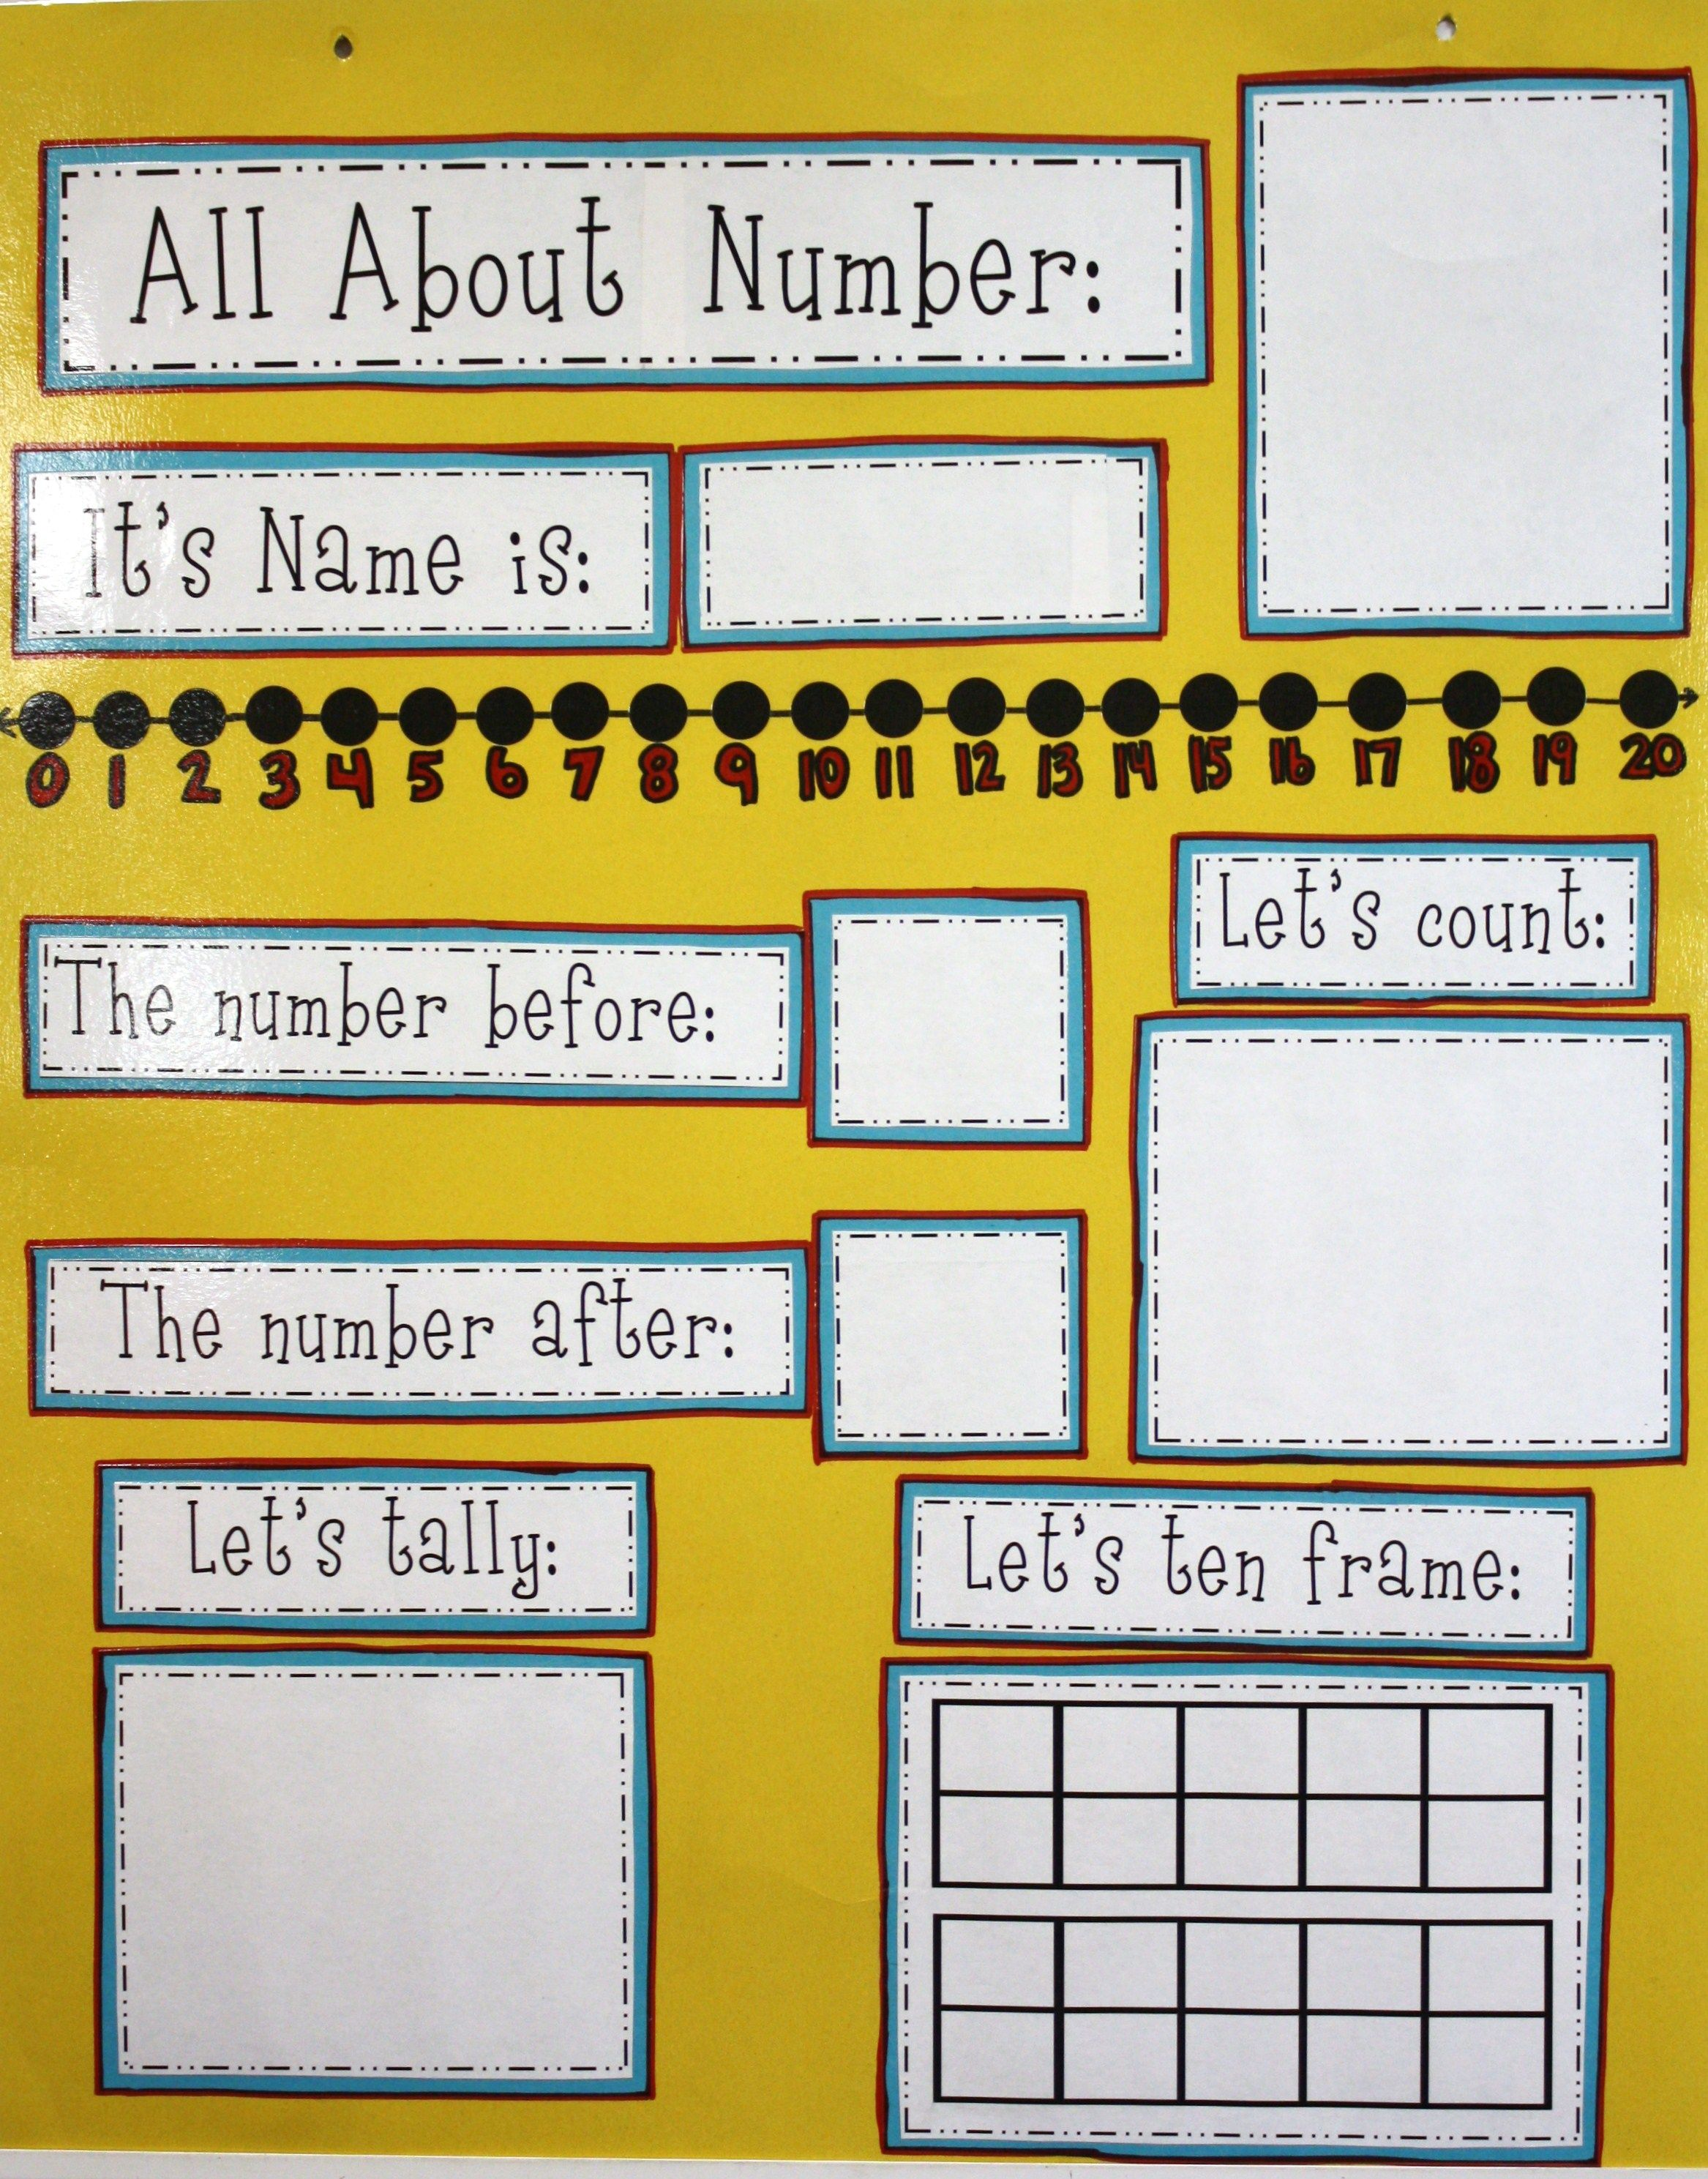 All About Number Poster Add Expanded Form 10 Less 10 More Classroom